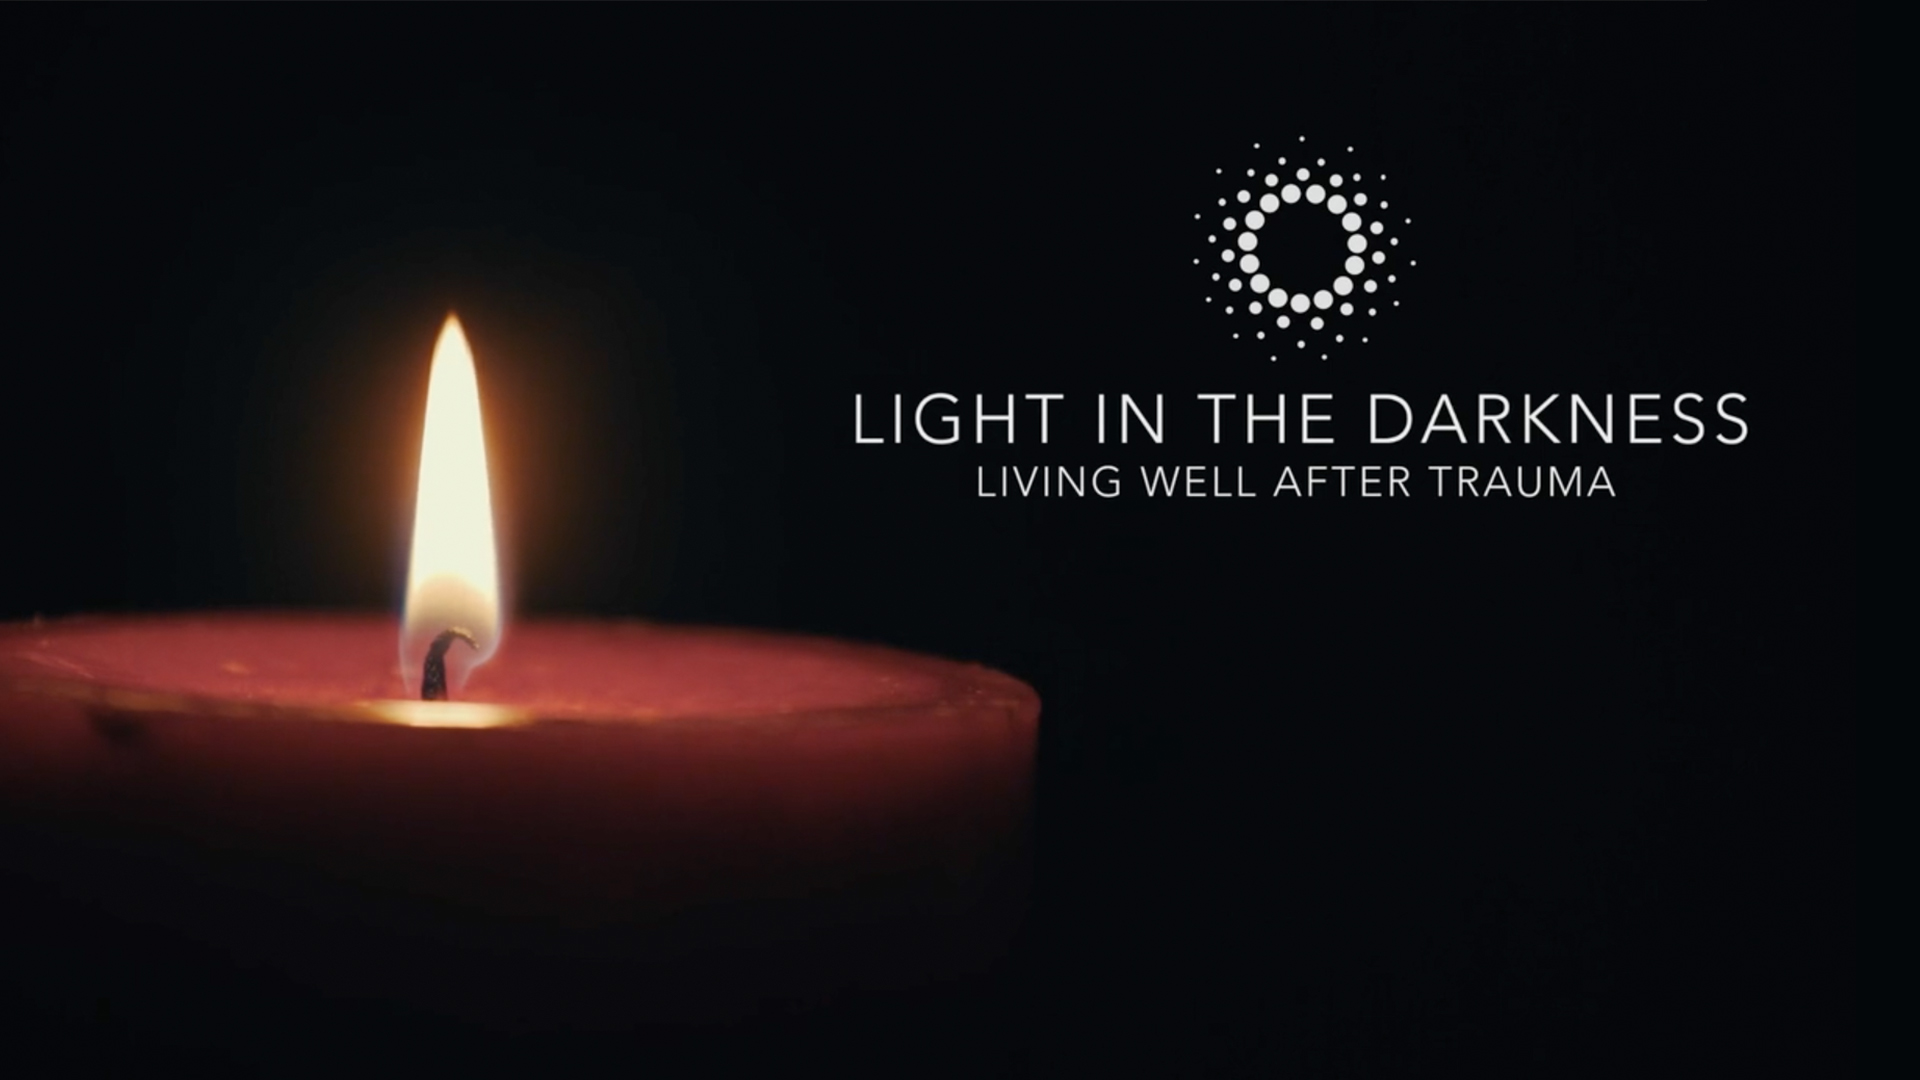 Light in the Darkness - Living Well After Trauma